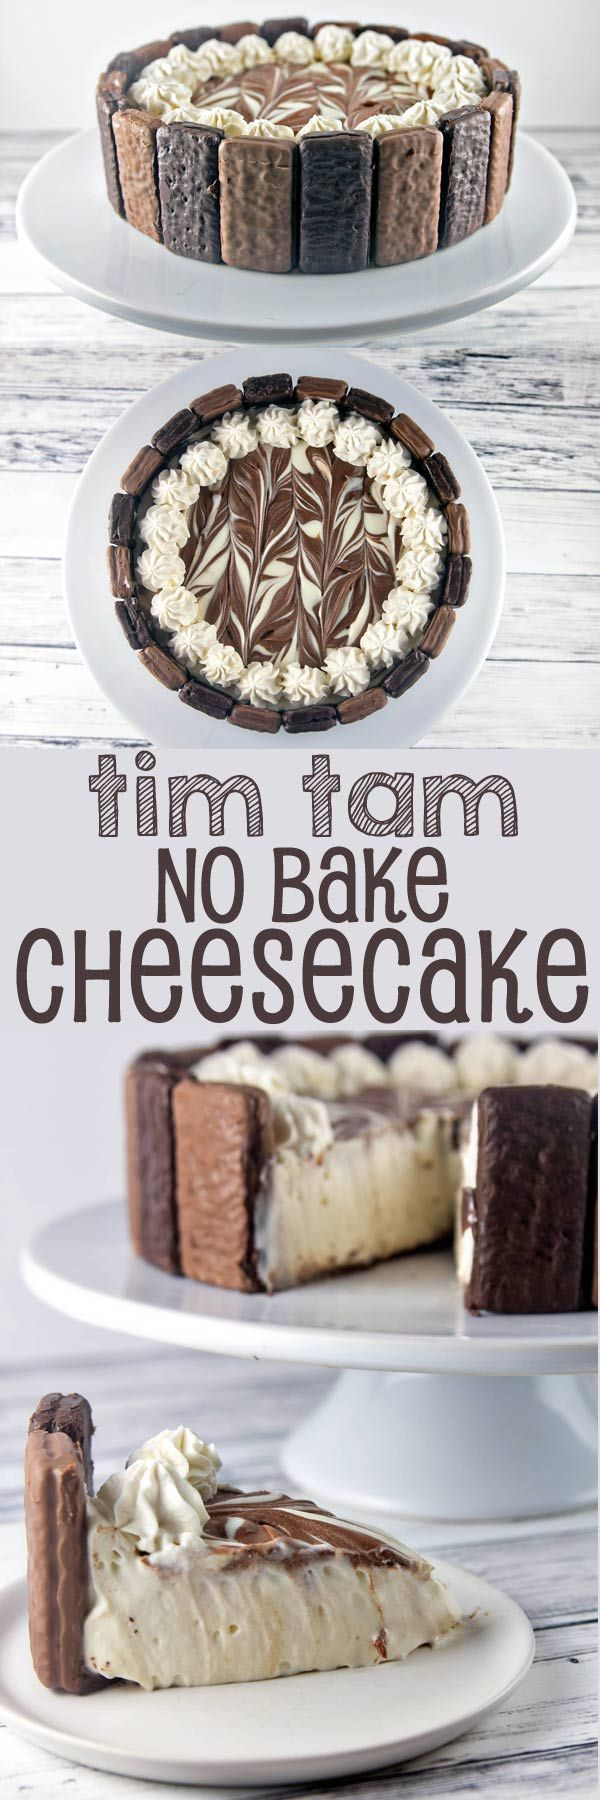 Tim Tam No Bake Cheesecake: the perfect quick and easy holiday entertaining dessert. Crunchy Tim Tams paired with a light, smooth no bake cheesecake filling, and a pure chocolate crust. Heavenly! {Bunsen Burner Bakery}